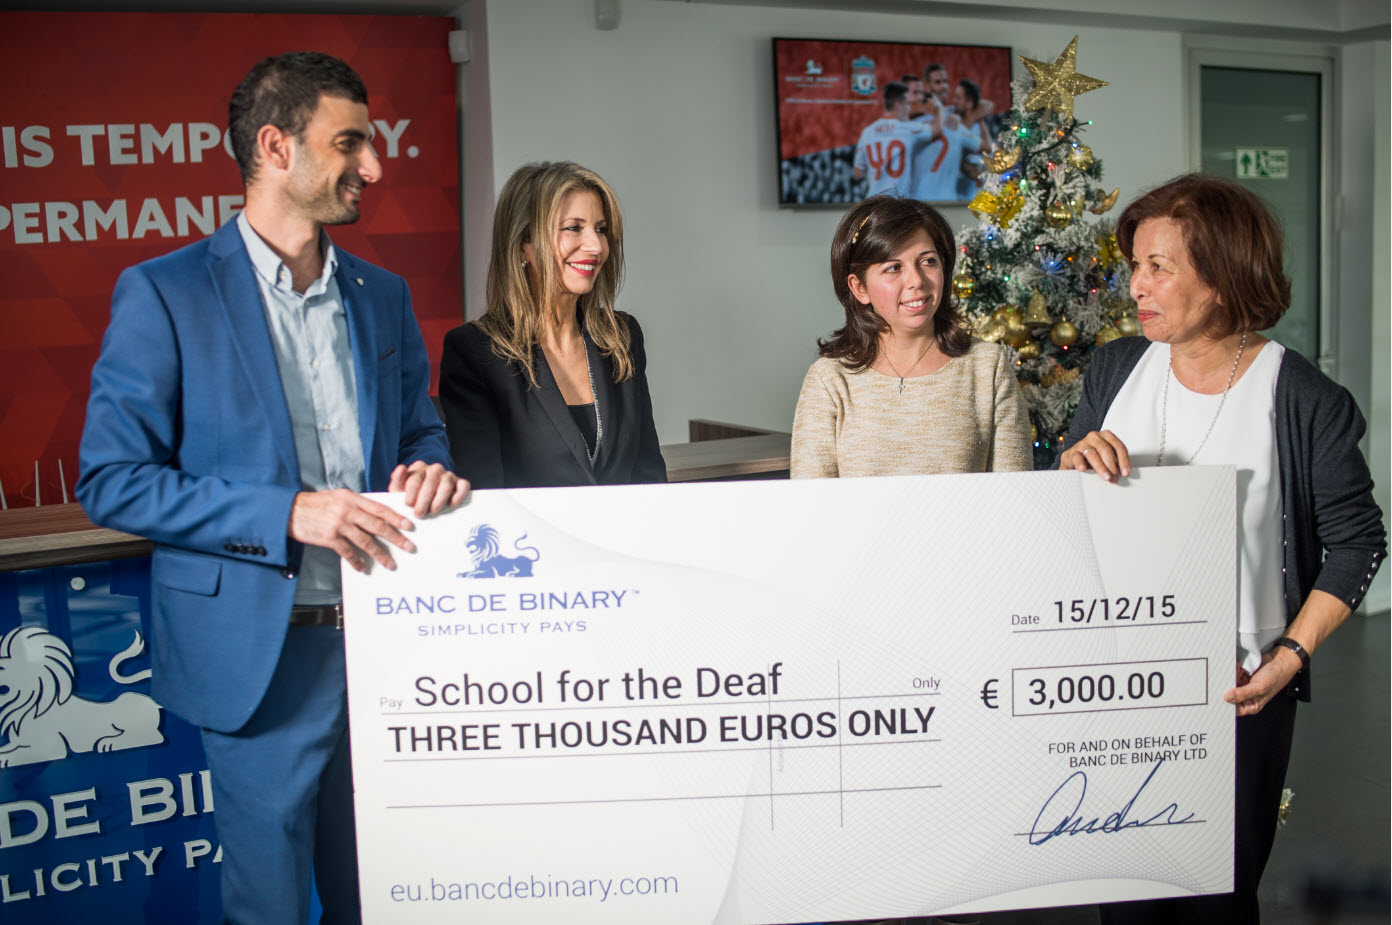 banc de binary gives generous donation to deaf school in cyprus continues commitment to local. Black Bedroom Furniture Sets. Home Design Ideas